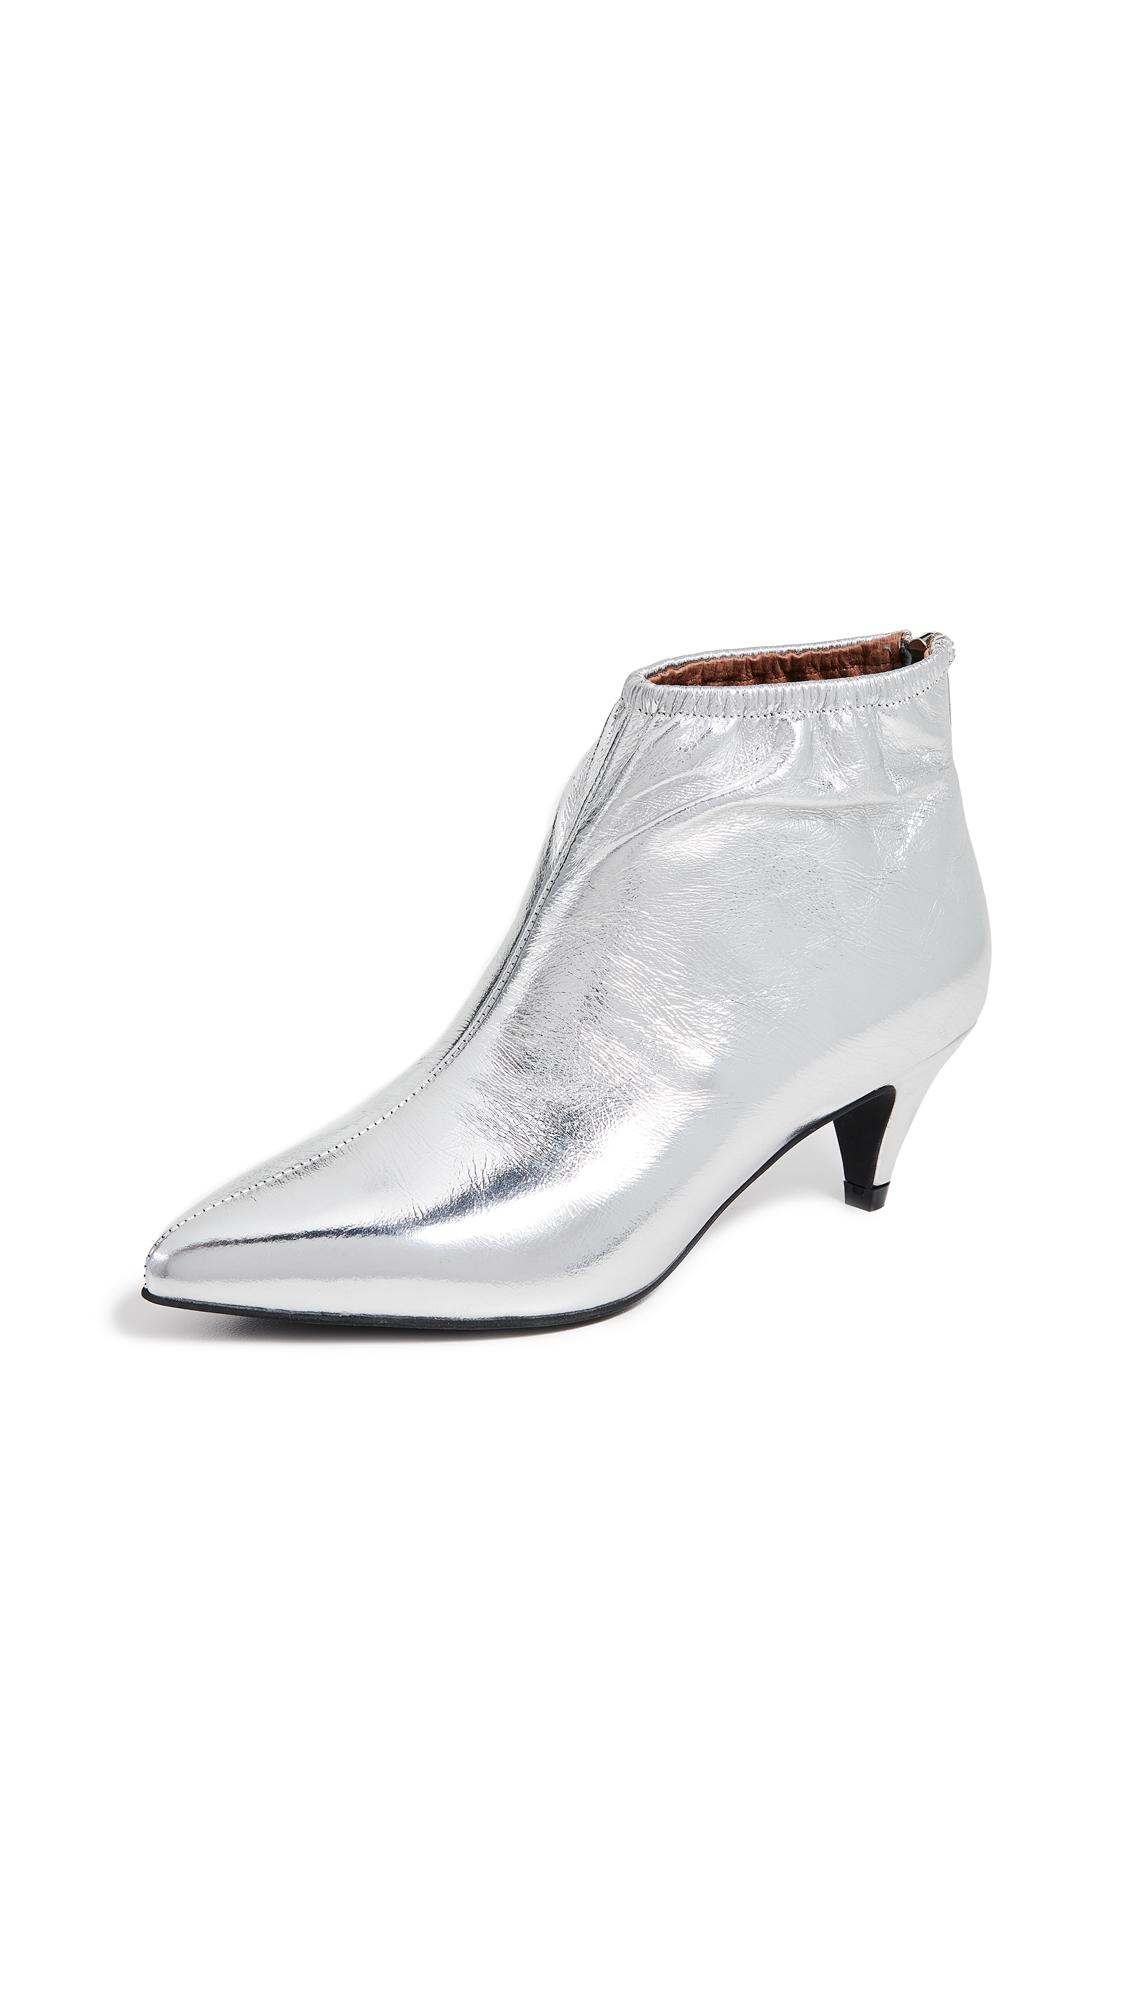 80cdc6bb2af Jeffrey Campbell Zosia Low Heel Booties In Silver